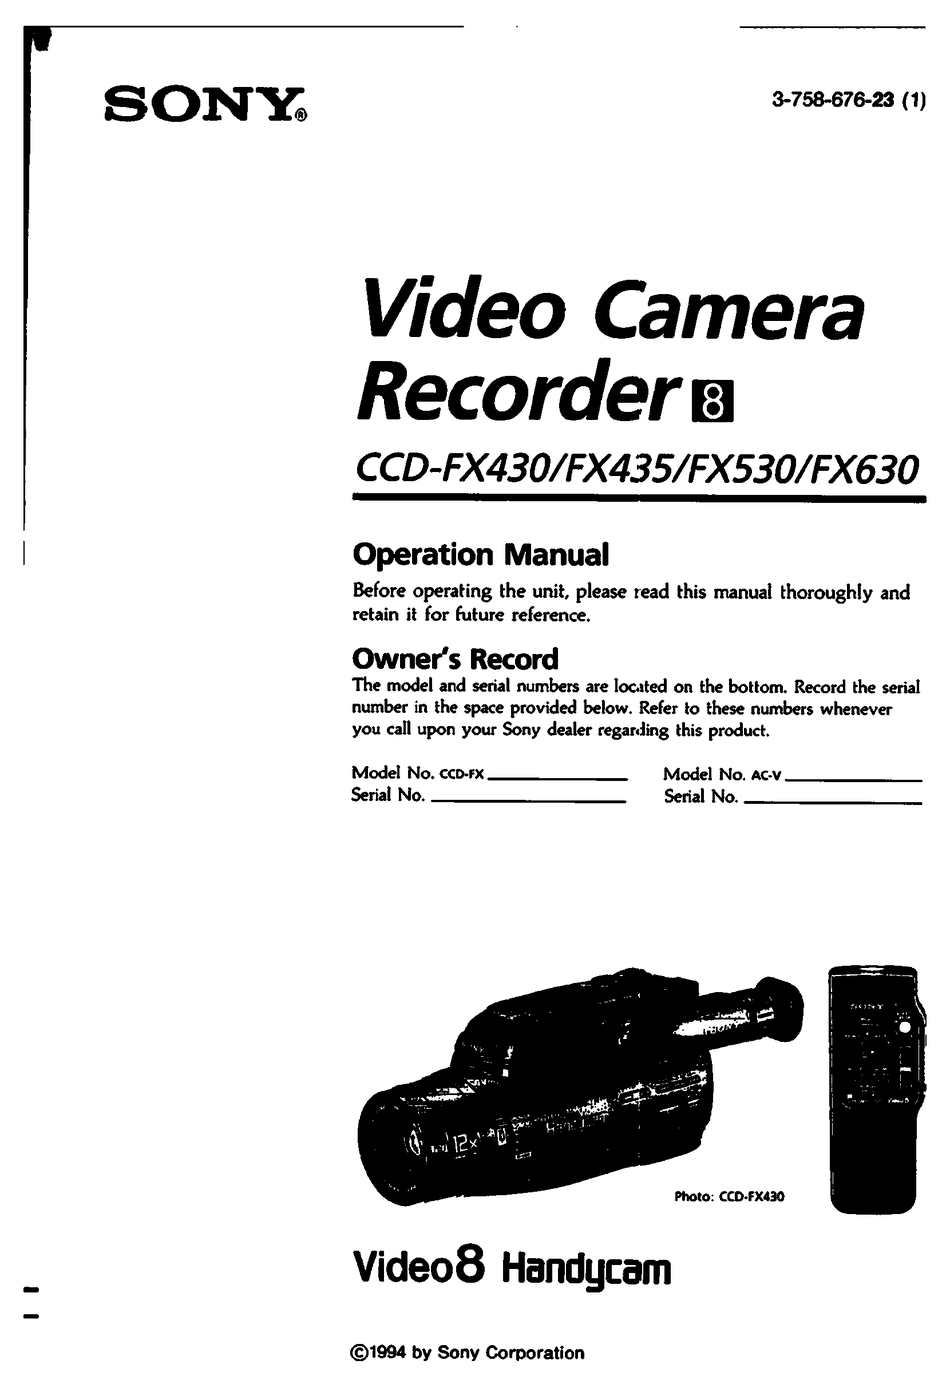 SONY HANDYCAM CCD-FX430 OPERATION MANUAL Pdf Download